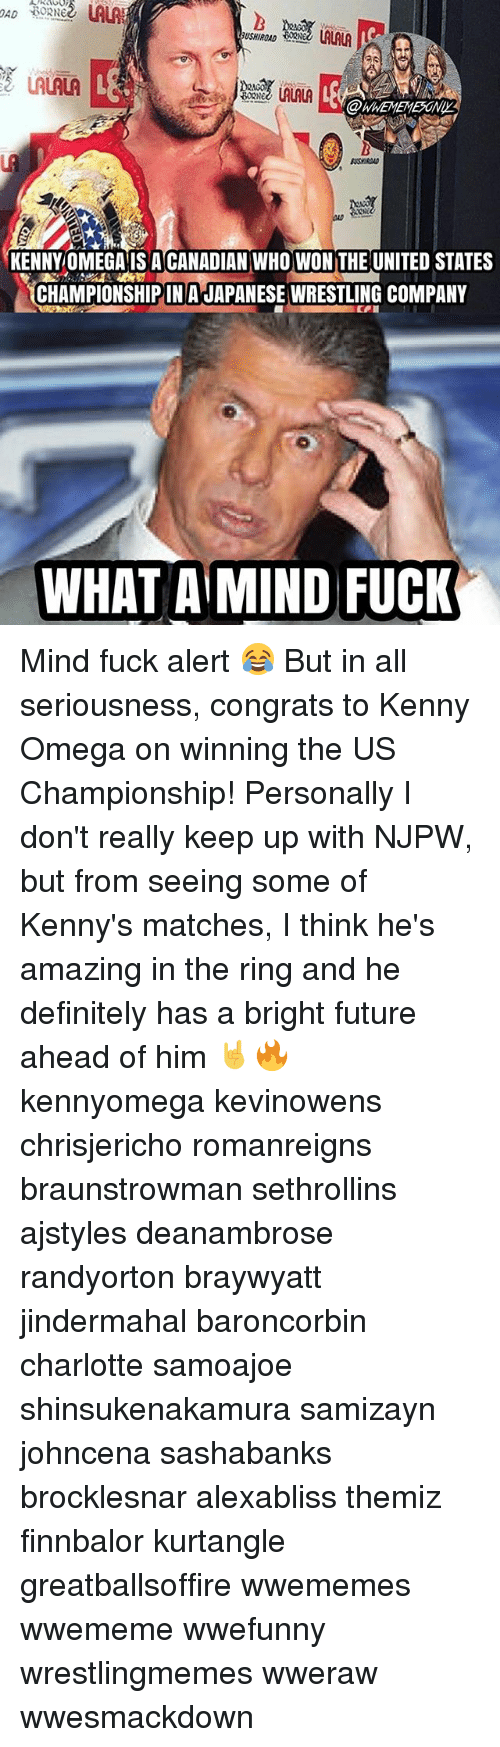 Omega: USHIROAD  LALALA  @WHEMEMEONIY  KENNYOMEGA IS ACANADIAN WHO WON THE UNITED STATES  CHAMPIONSHIP IN A JAPANESE WRESILING COMPANY  WHAT A MIND FUCK Mind fuck alert 😂 But in all seriousness, congrats to Kenny Omega on winning the US Championship! Personally I don't really keep up with NJPW, but from seeing some of Kenny's matches, I think he's amazing in the ring and he definitely has a bright future ahead of him 🤘🔥 kennyomega kevinowens chrisjericho romanreigns braunstrowman sethrollins ajstyles deanambrose randyorton braywyatt jindermahal baroncorbin charlotte samoajoe shinsukenakamura samizayn johncena sashabanks brocklesnar alexabliss themiz finnbalor kurtangle greatballsoffire wwememes wwememe wwefunny wrestlingmemes wweraw wwesmackdown